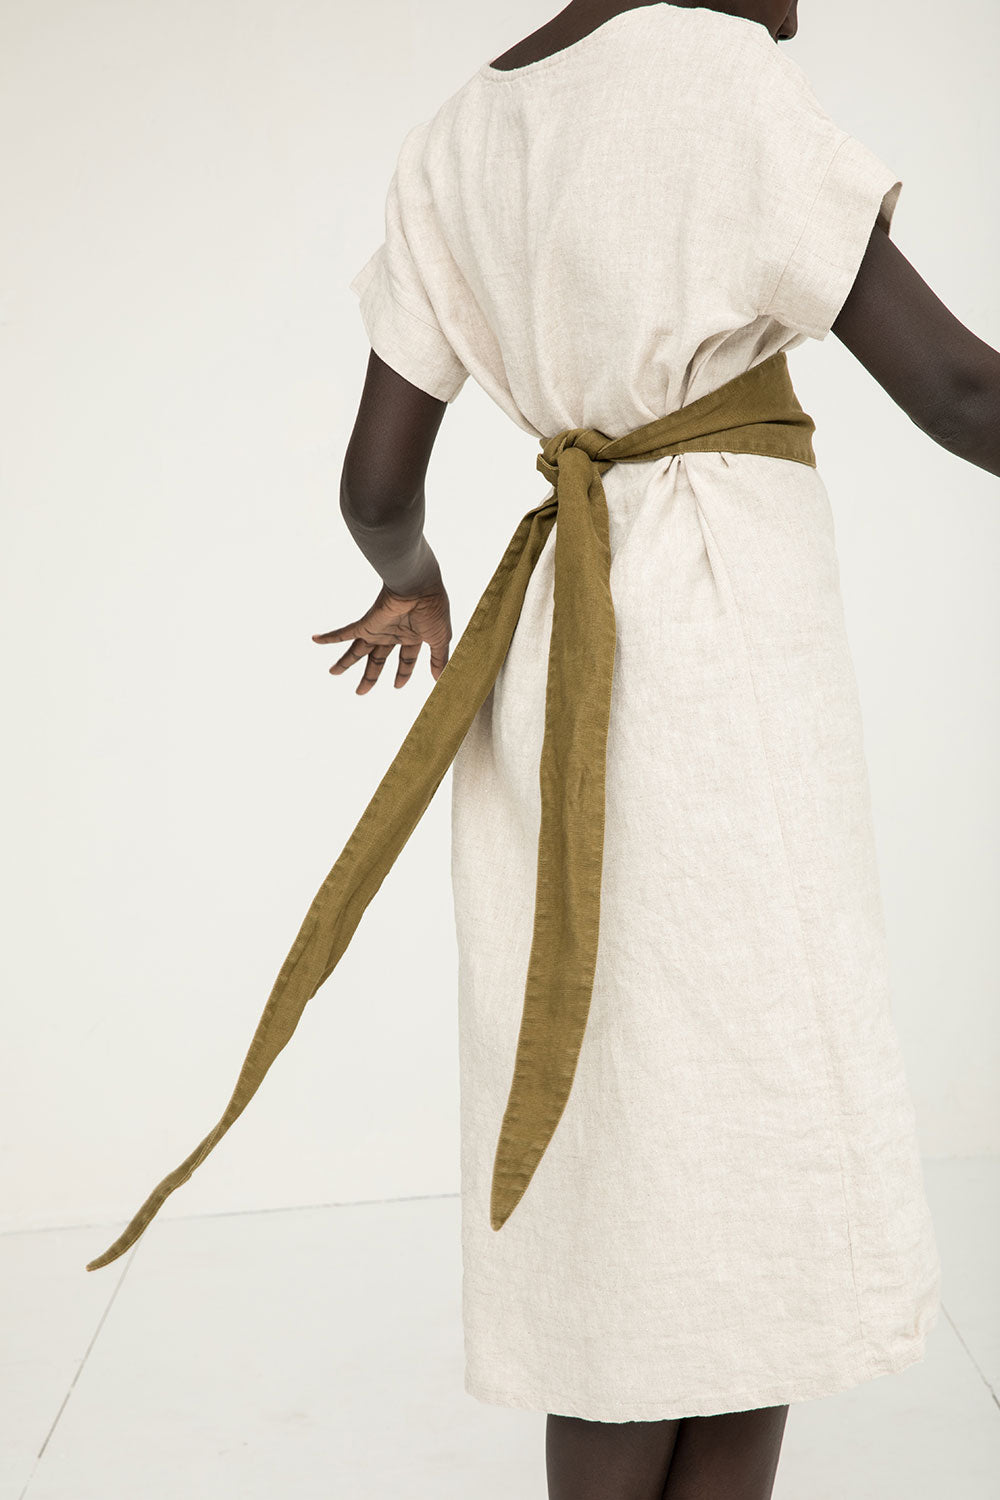 Asawa Tie Belt in Midweight Linen Olive - Nyamuoch - OSM